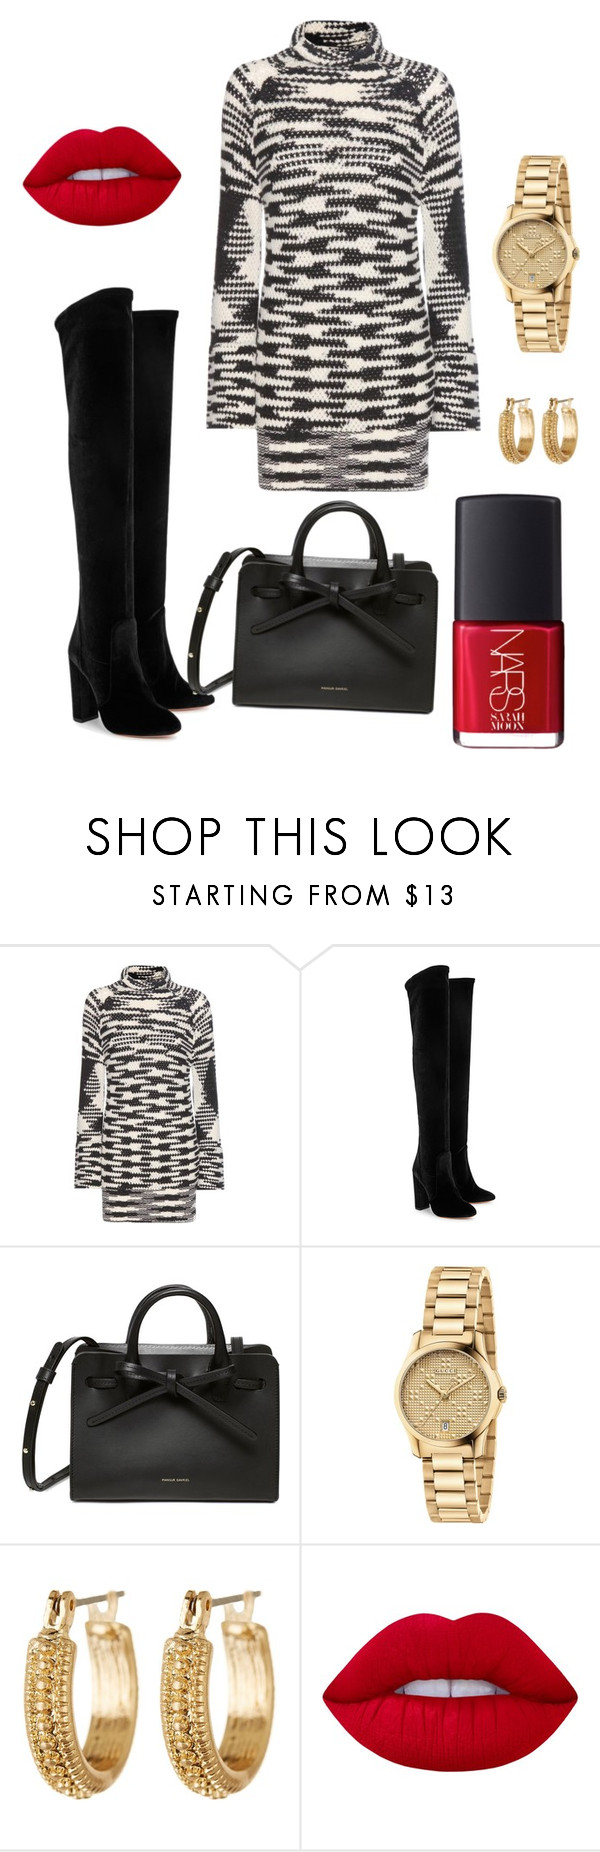 """""""Untitled #610"""" by stylemirror ❤ liked on Polyvore featuring Missoni, Aquazzura, Gucci, Melrose & Market, Lime Crime and NARS Cosmetics"""